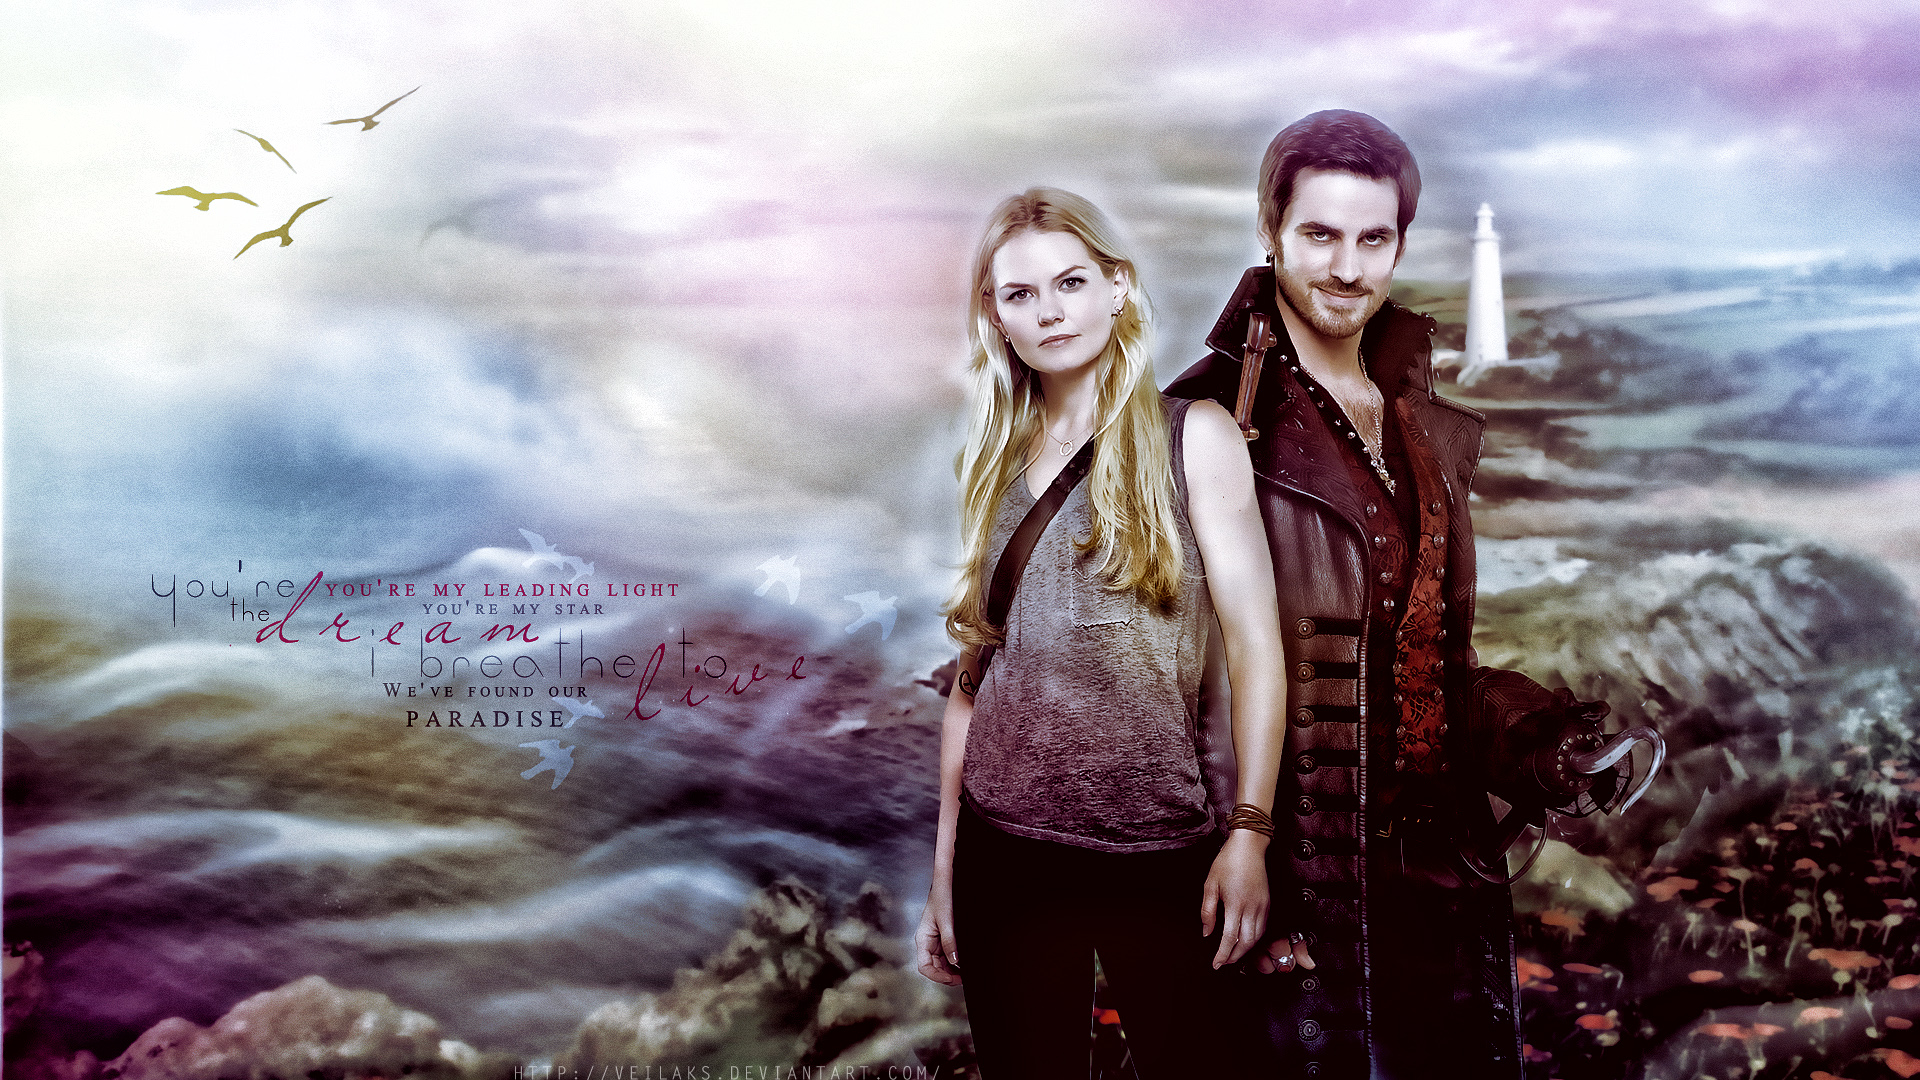 Captain Hook and Emma রাজহাঁস